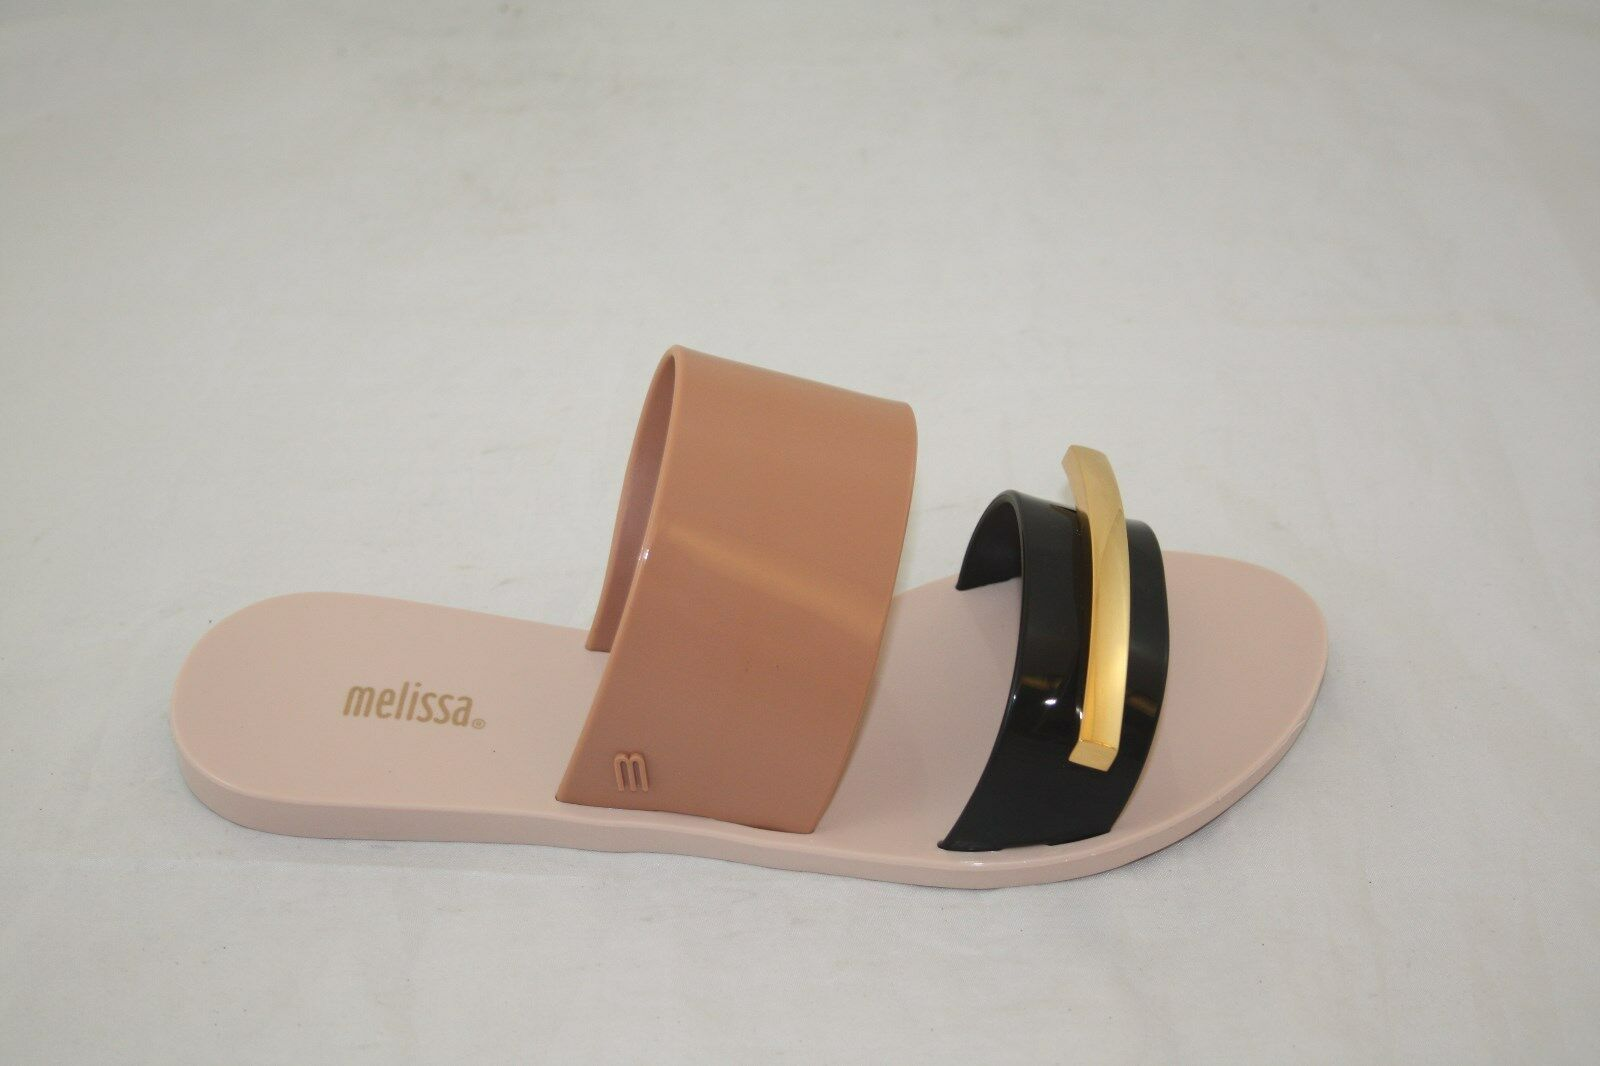 NEU WMNS 31741 MELISSA WONDERFUL II AD 51647 PINK/ BLACK SLIDE